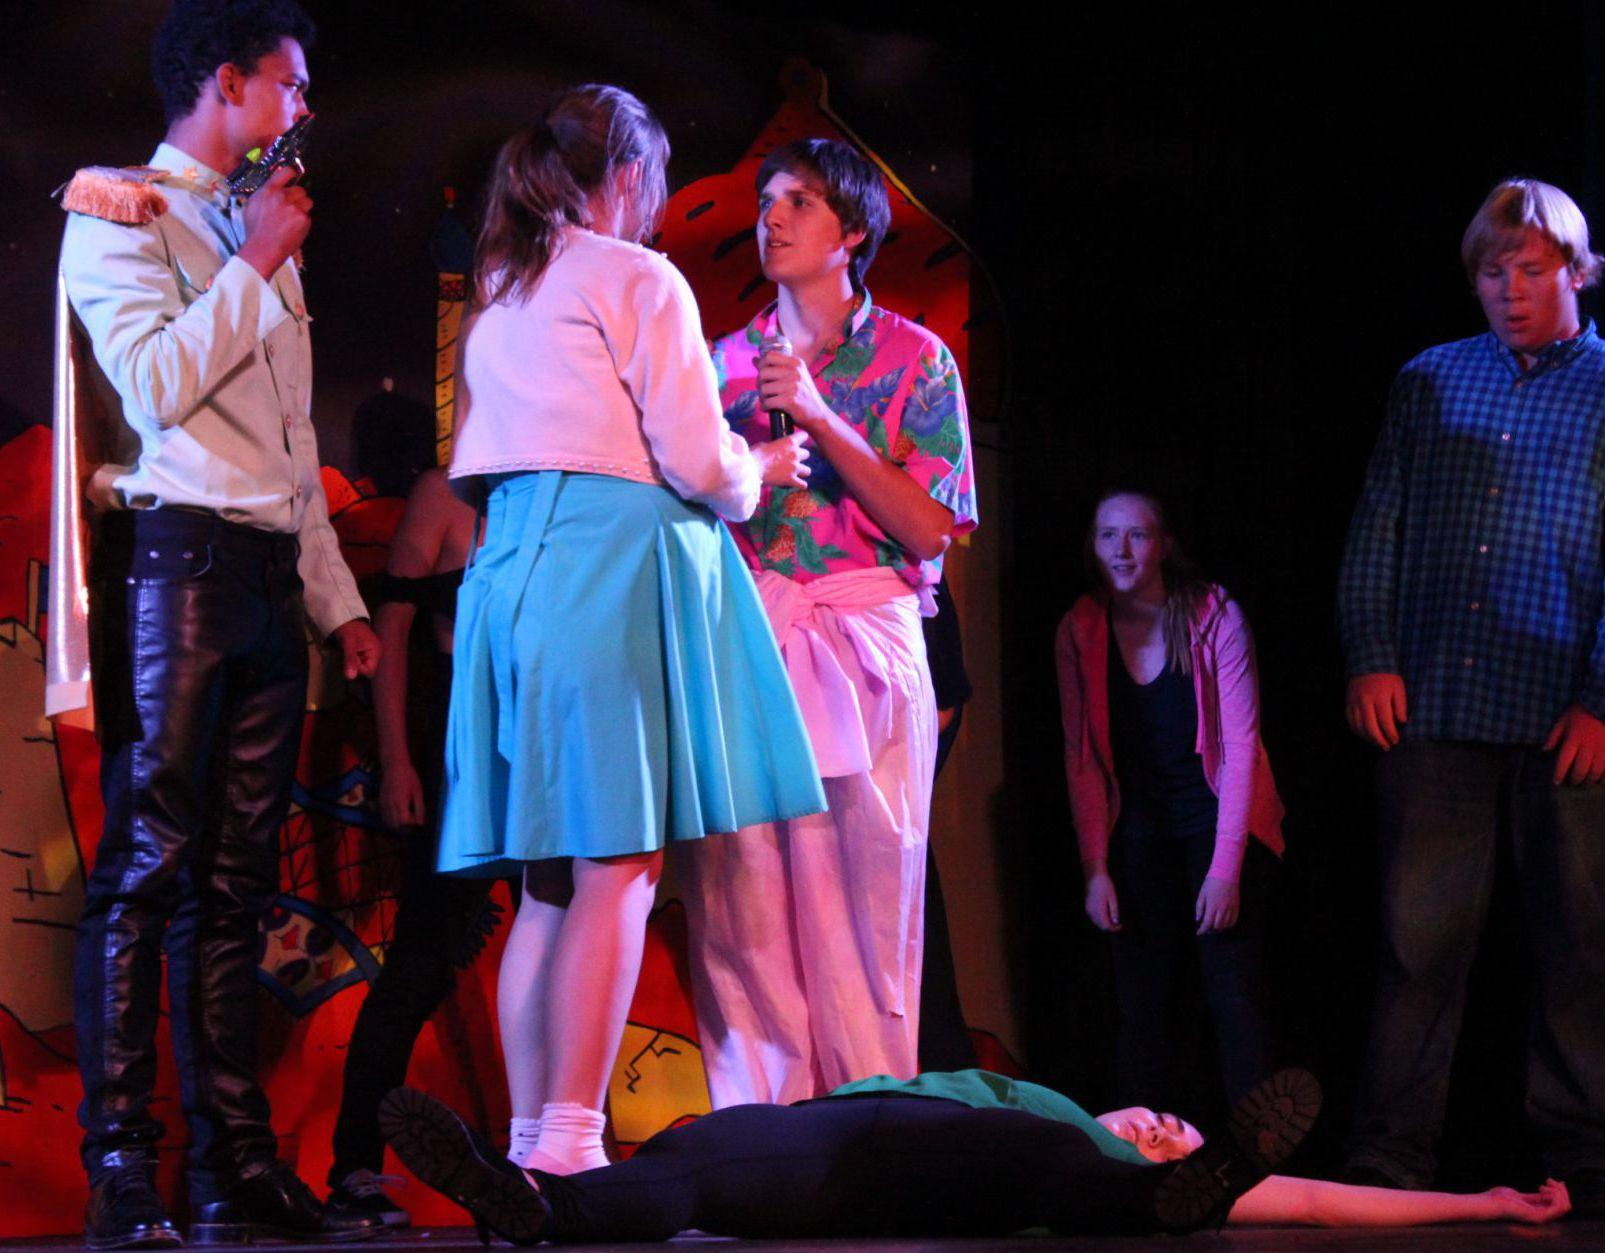 Planet Z: Drama starts the year with an outlandish musical comedy